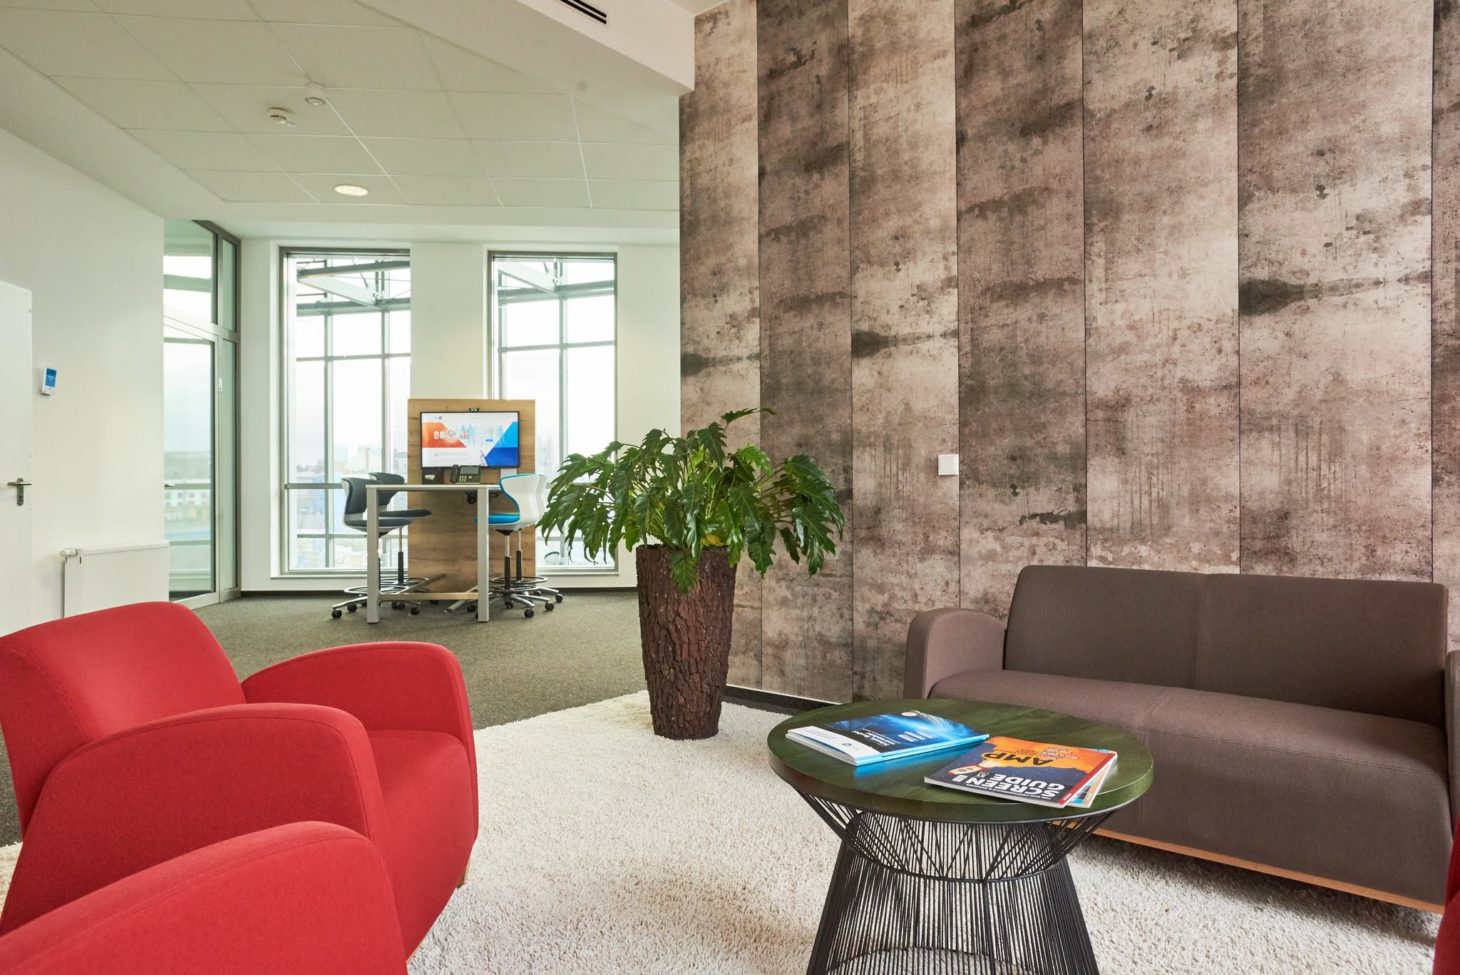 Lounge at the netz98 office in Mainz, valantic branch